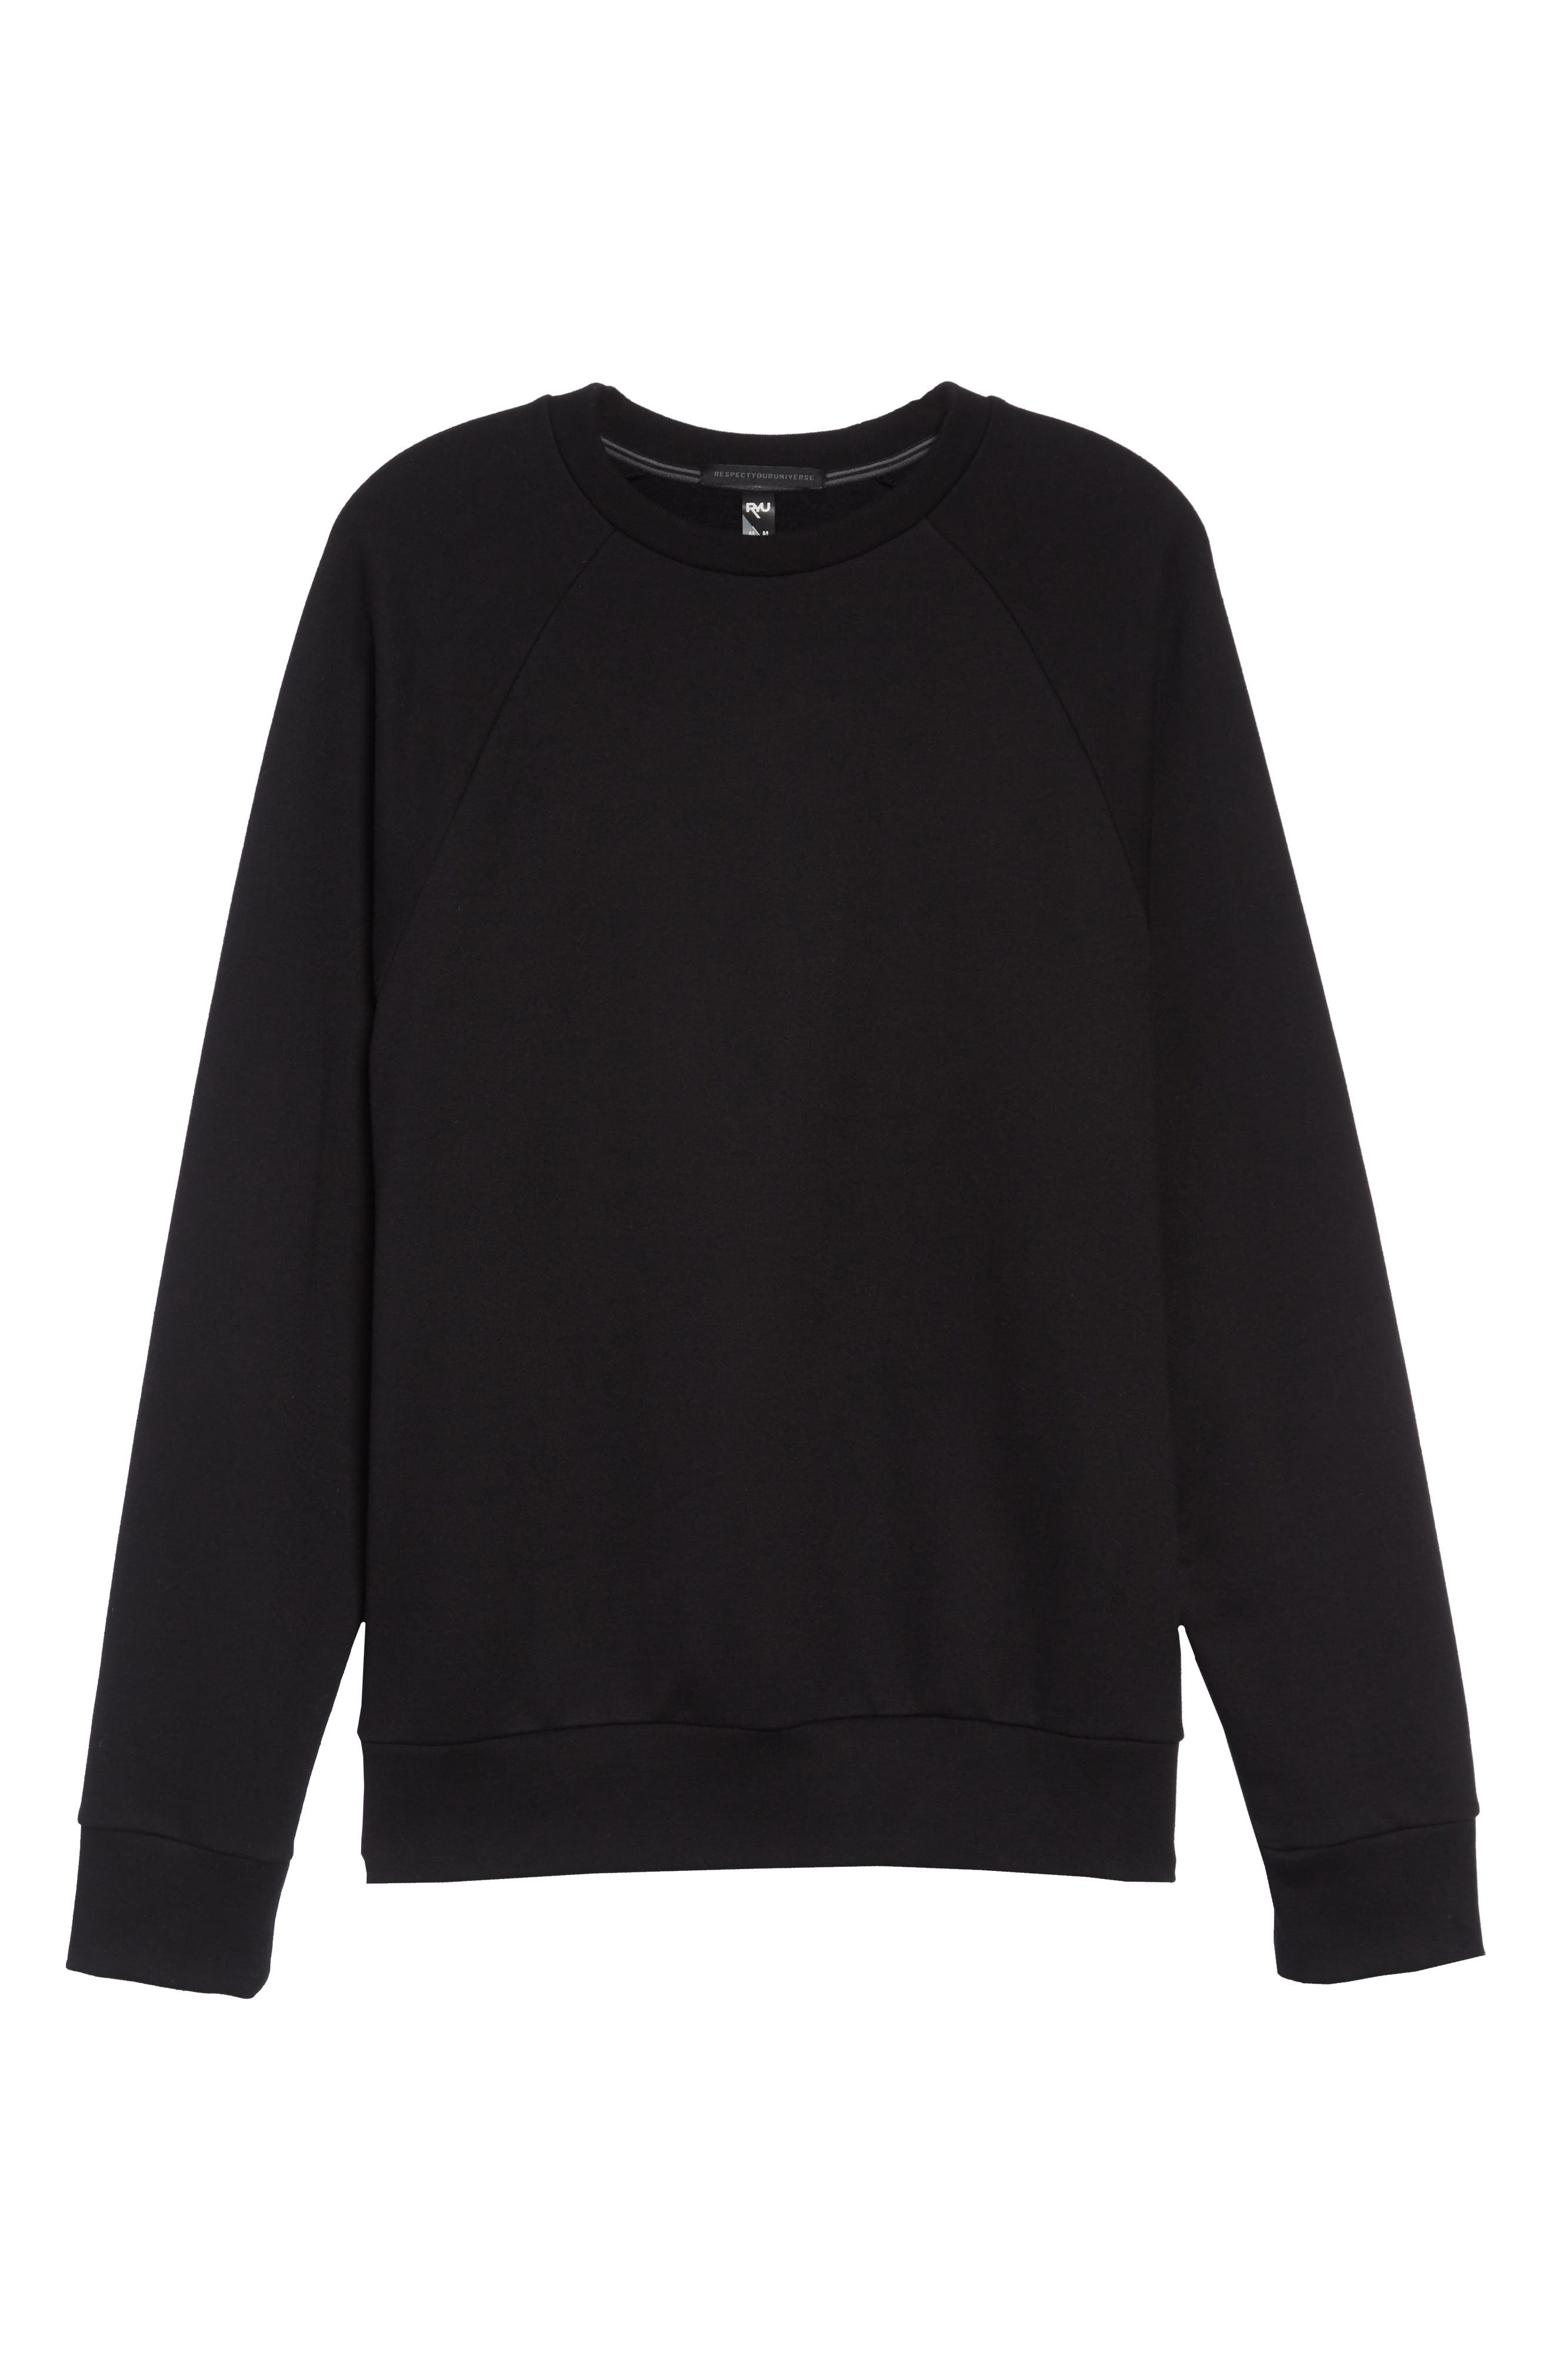 Core Fleece Crewneck,                             Alternate thumbnail 6, color,                             BLACK